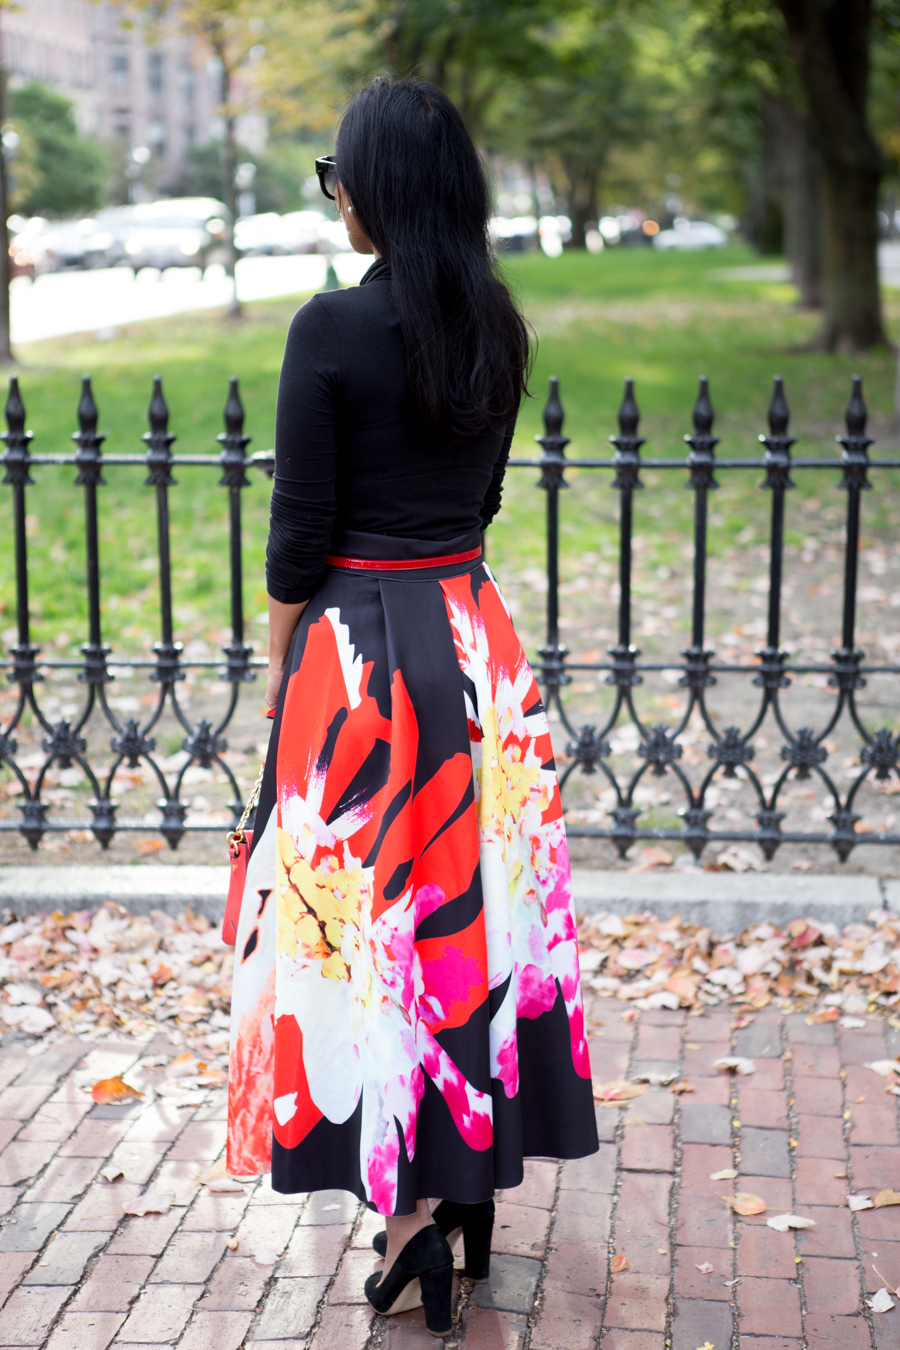 fall florals, black suede, red bag, party wear, party outfit, midi skirt, shein, jcrew factory, feminine style, office party, formal wear, occasion, fancy